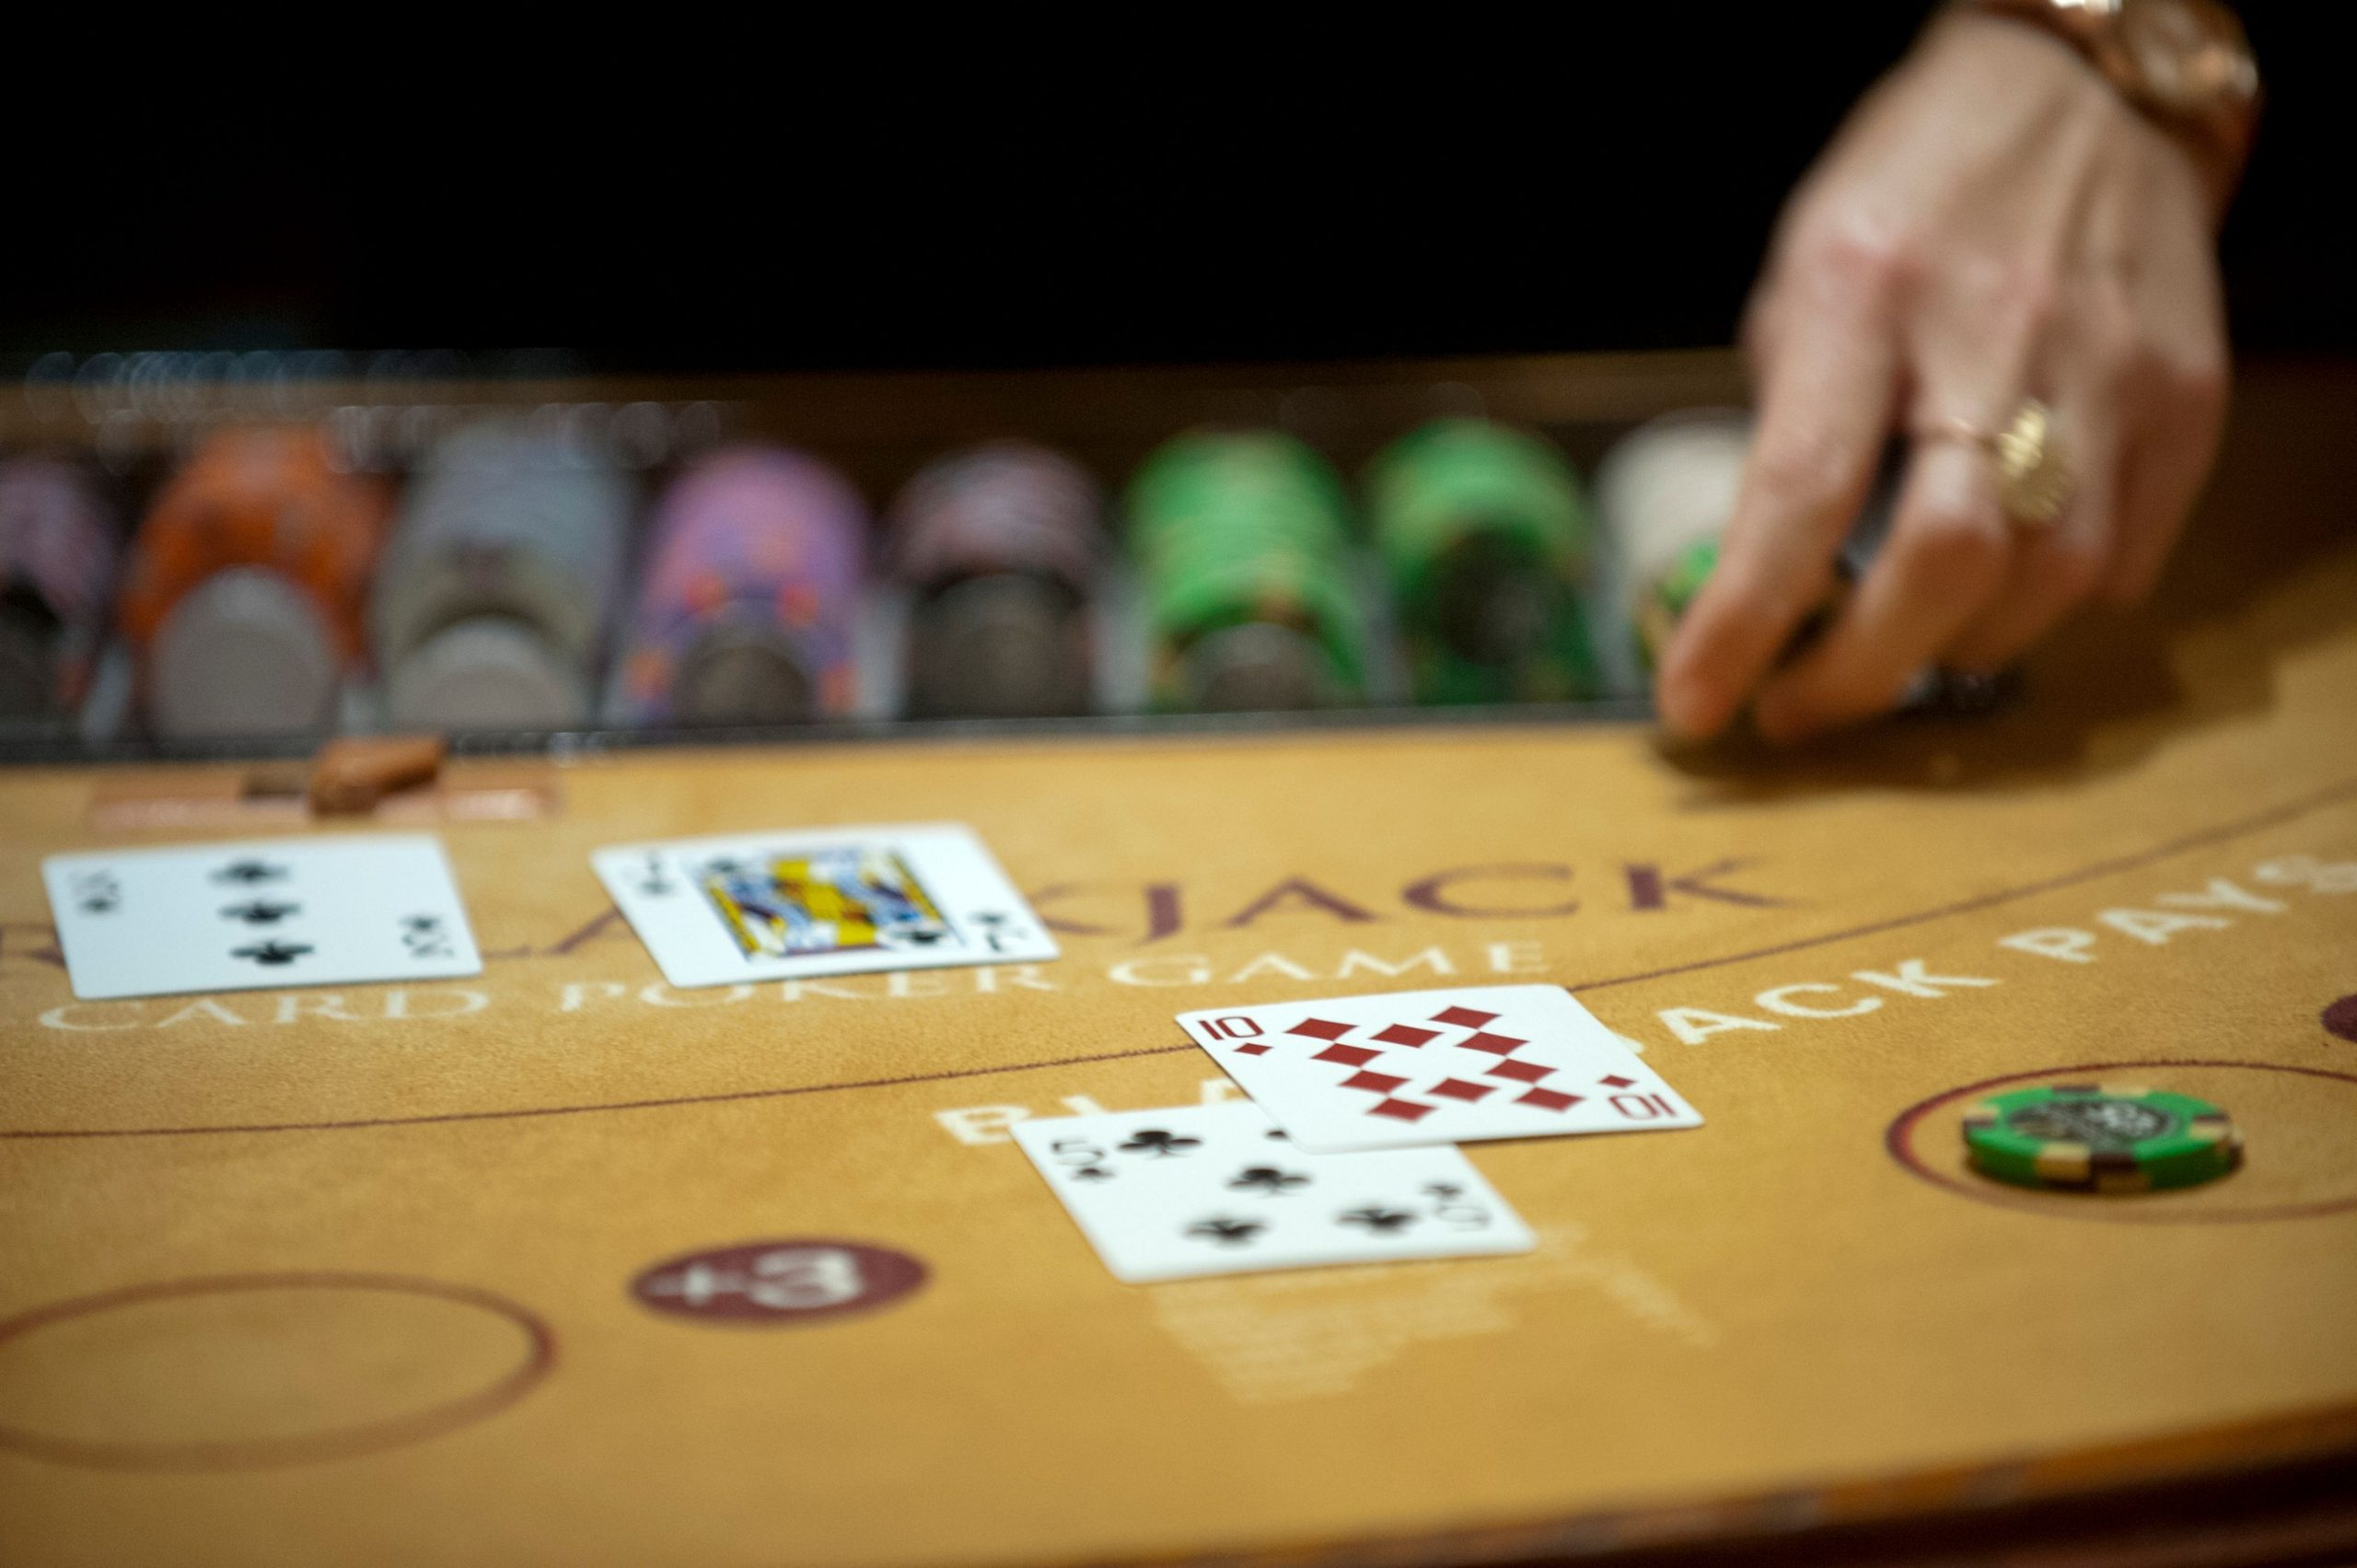 Importance Of Improving Your Casino Game And Poker Strategy